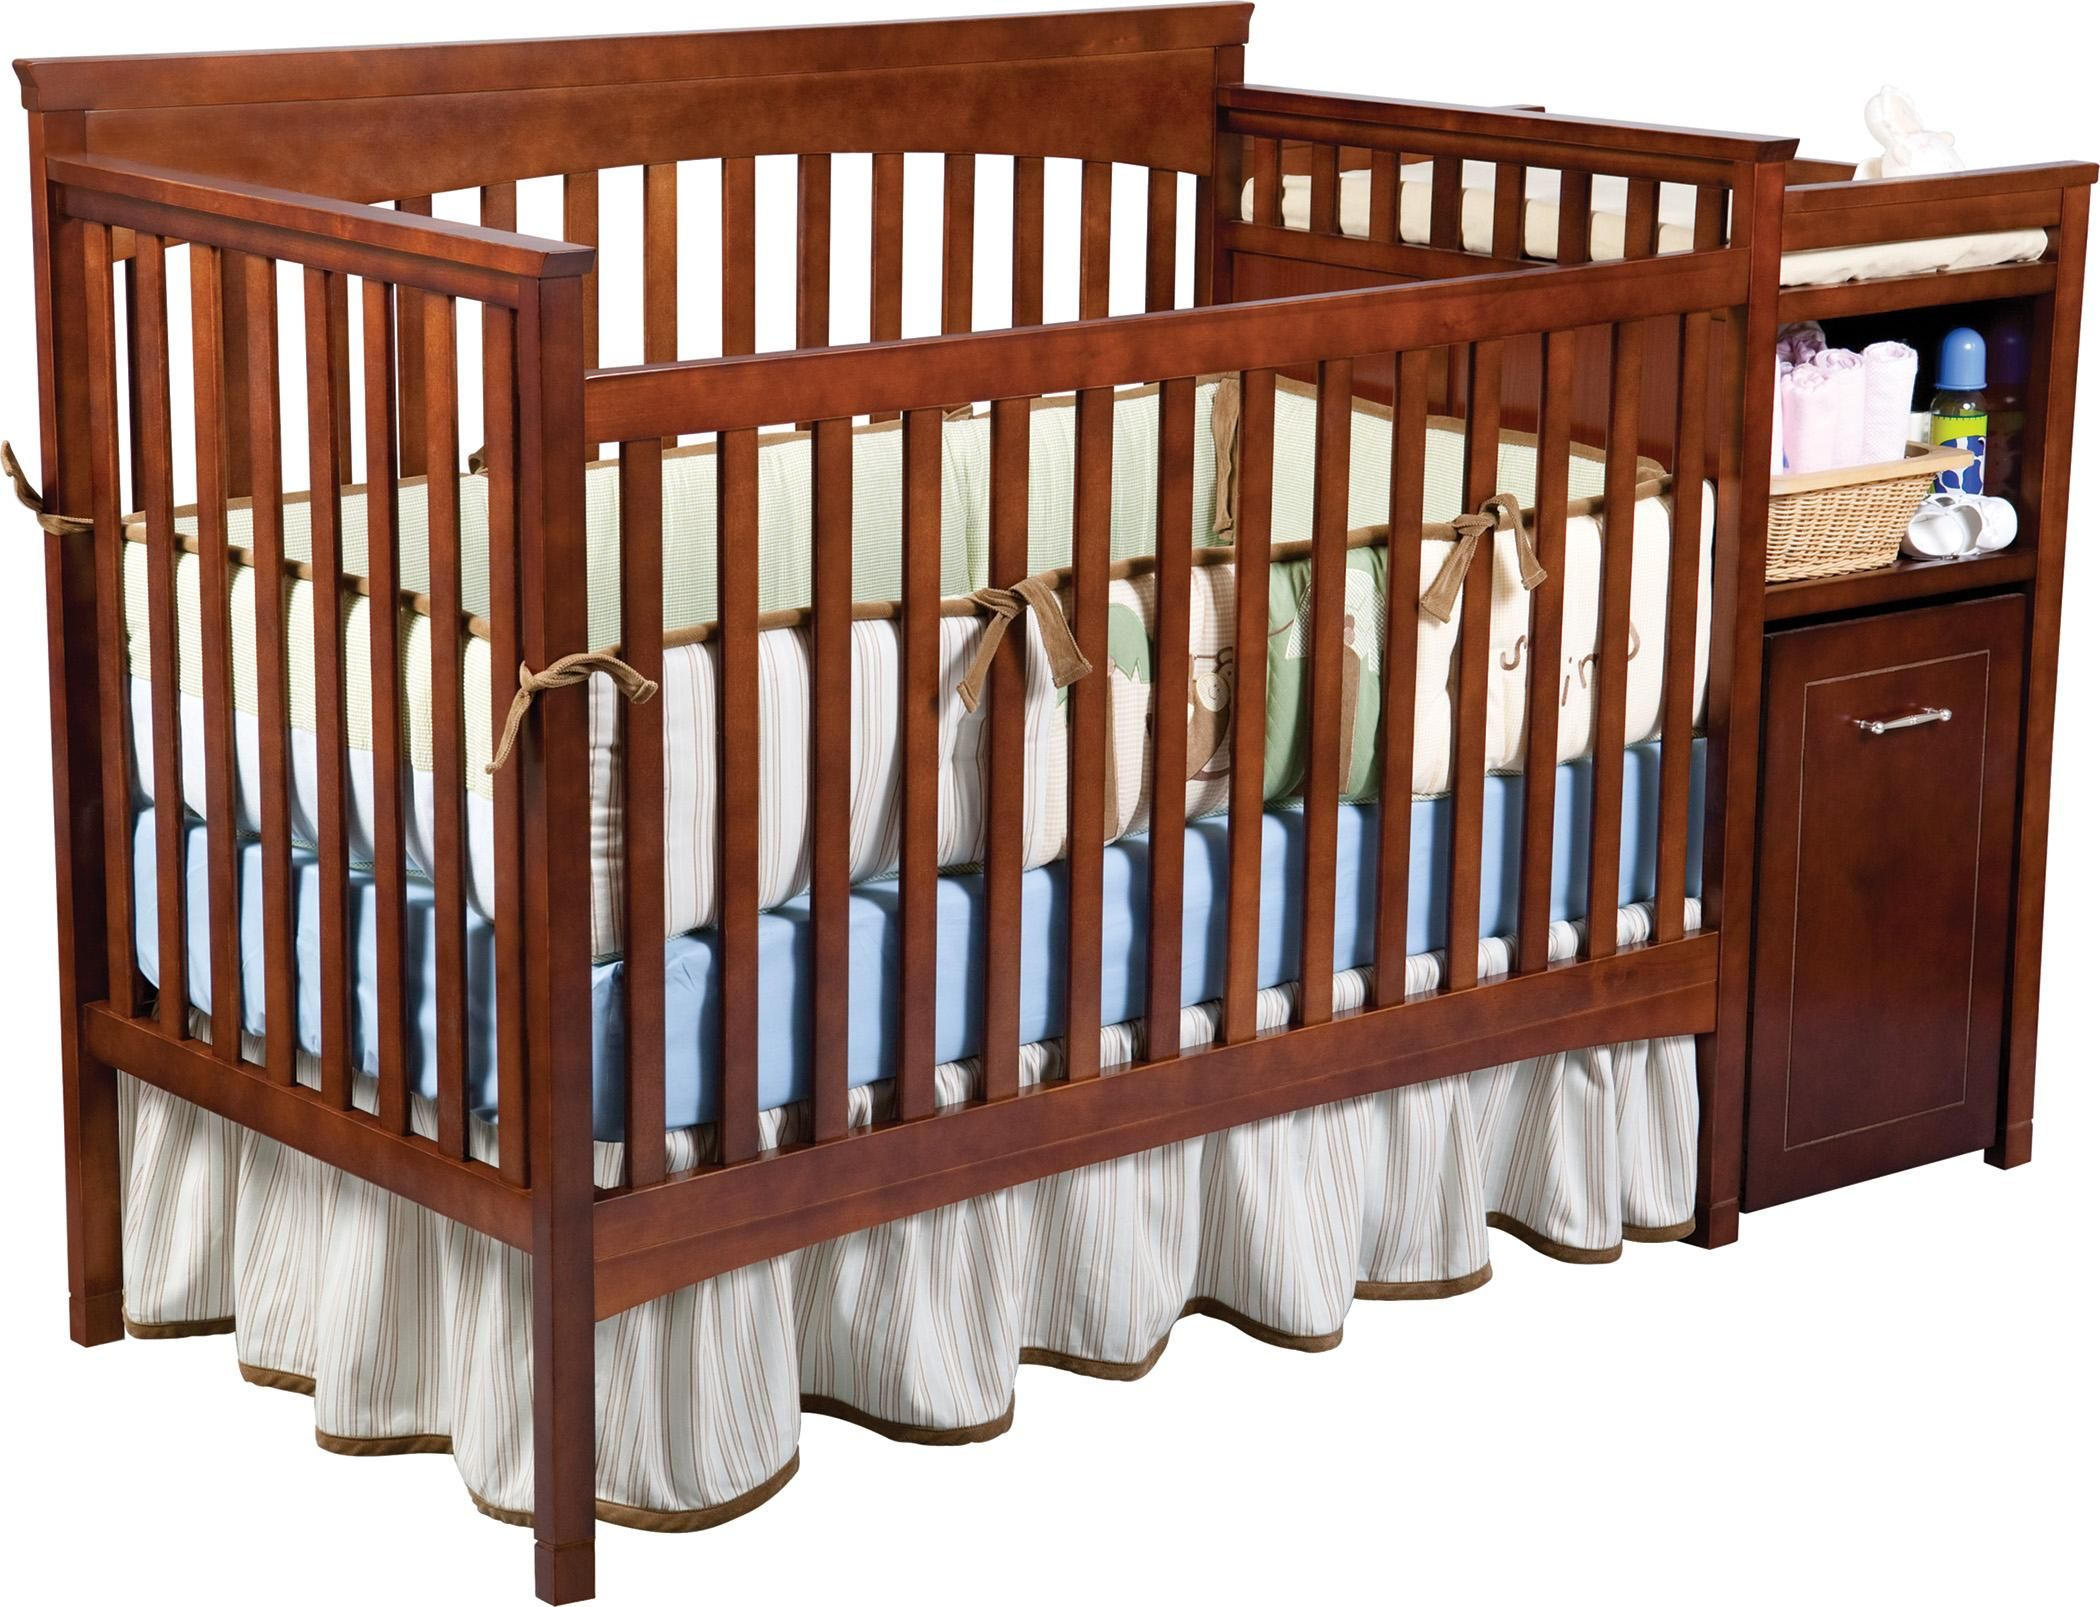 table baby as cheap conversion portofino white storkcraft crib changing combo together size blankets full swaddlingss plans of attached kit cribs well also swaddlings with